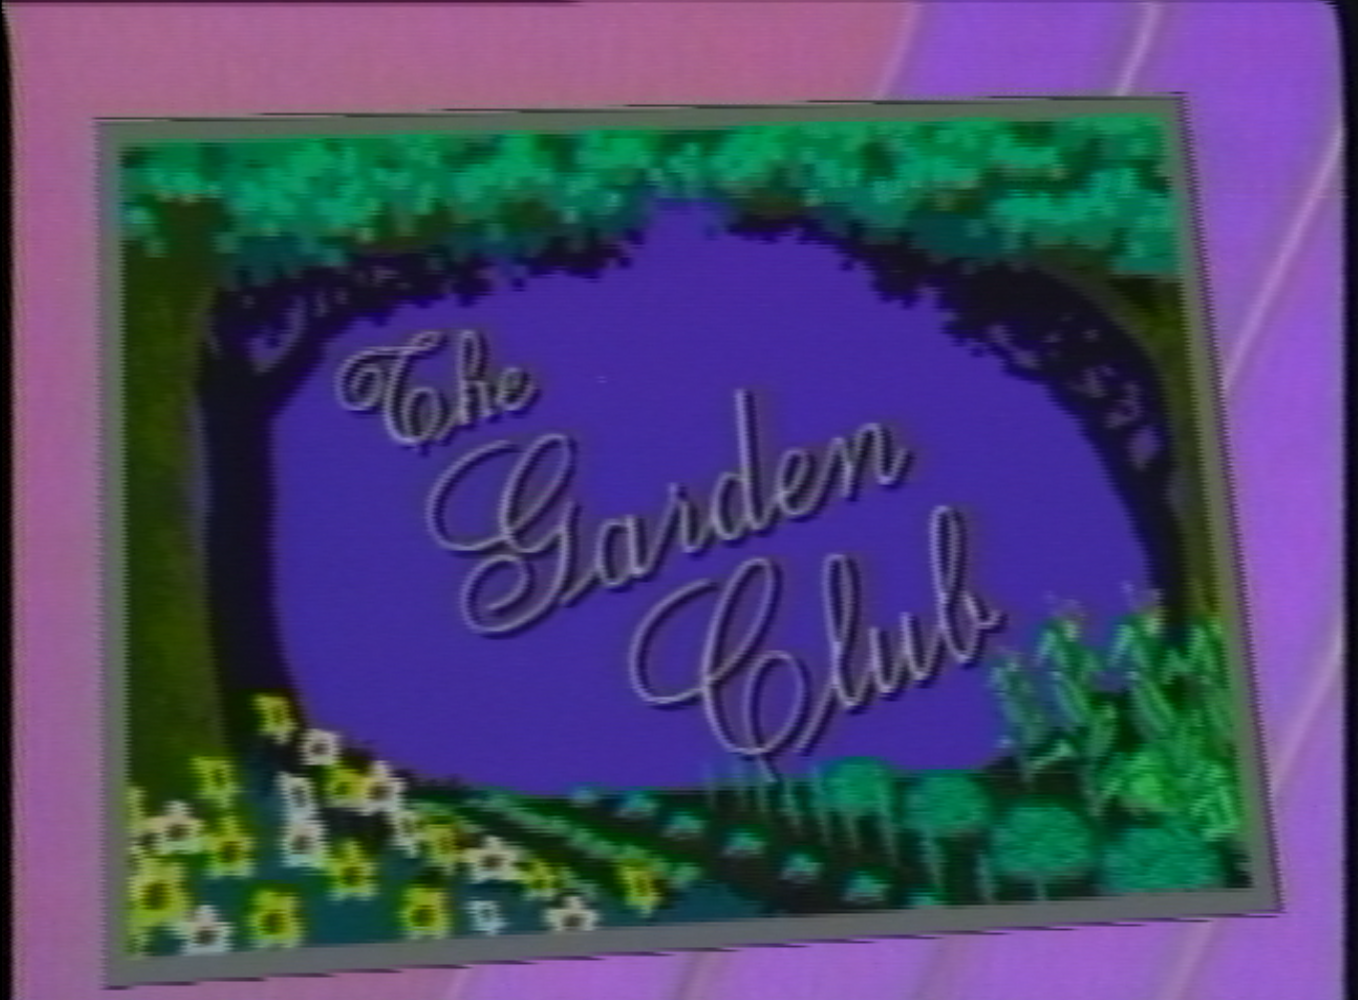 A screen grab of the opening animation for The Garden Club, a regular WSJV program featuring gardening advice with Mike Maloney. September 19, 1990.